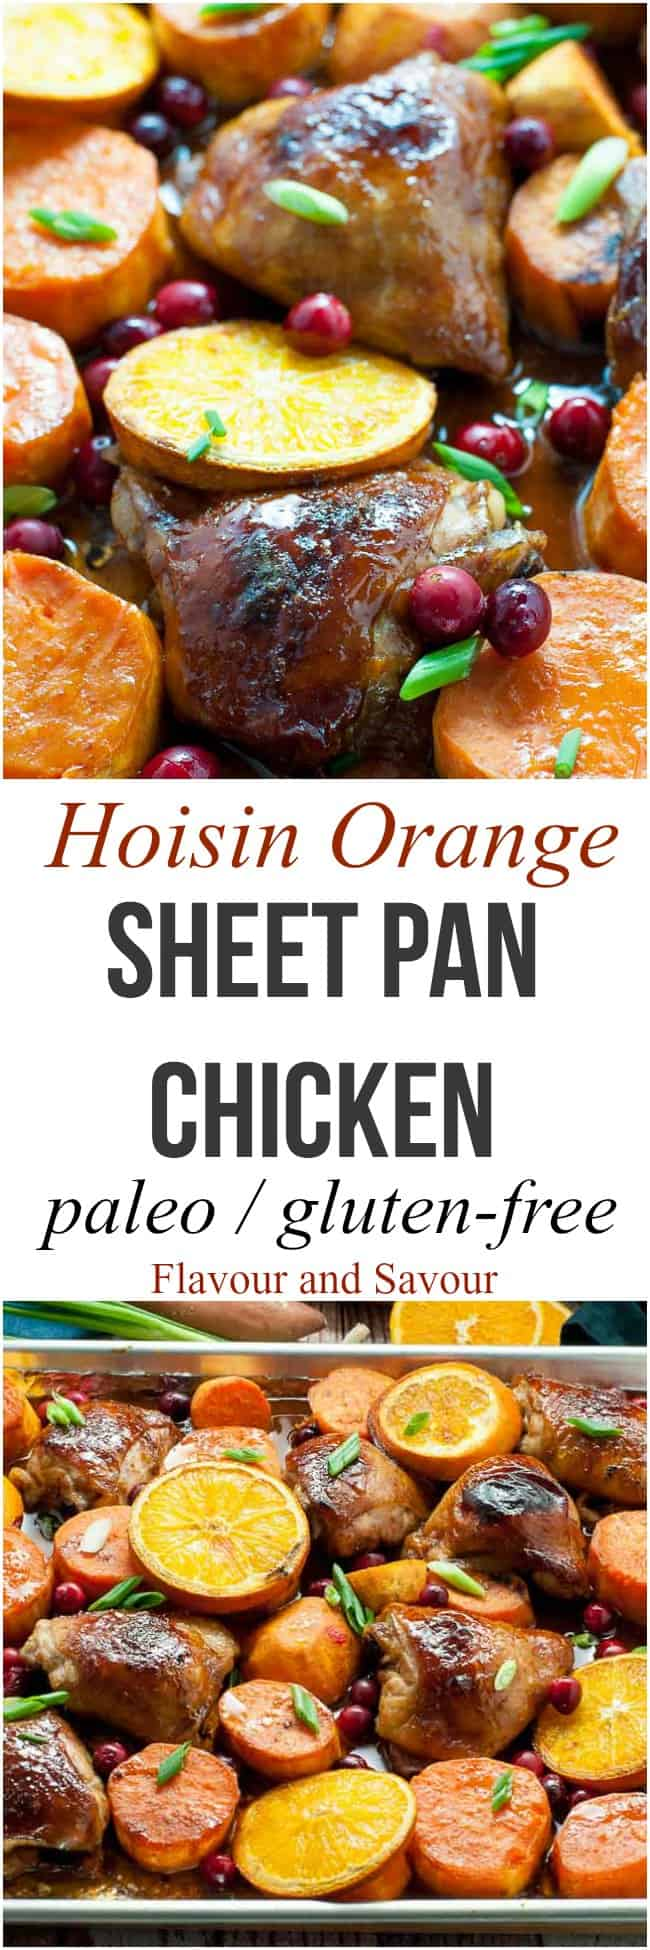 This Hoisin Orange Sheet Pan Chicken dinner with sweet potatoes makes juicy chicken with hints of orange, ginger and garlic. Add fresh tart cranberries for colour and flavour! #Paleo #asian #hoisin #orange #chicken #sheetpan #traybake